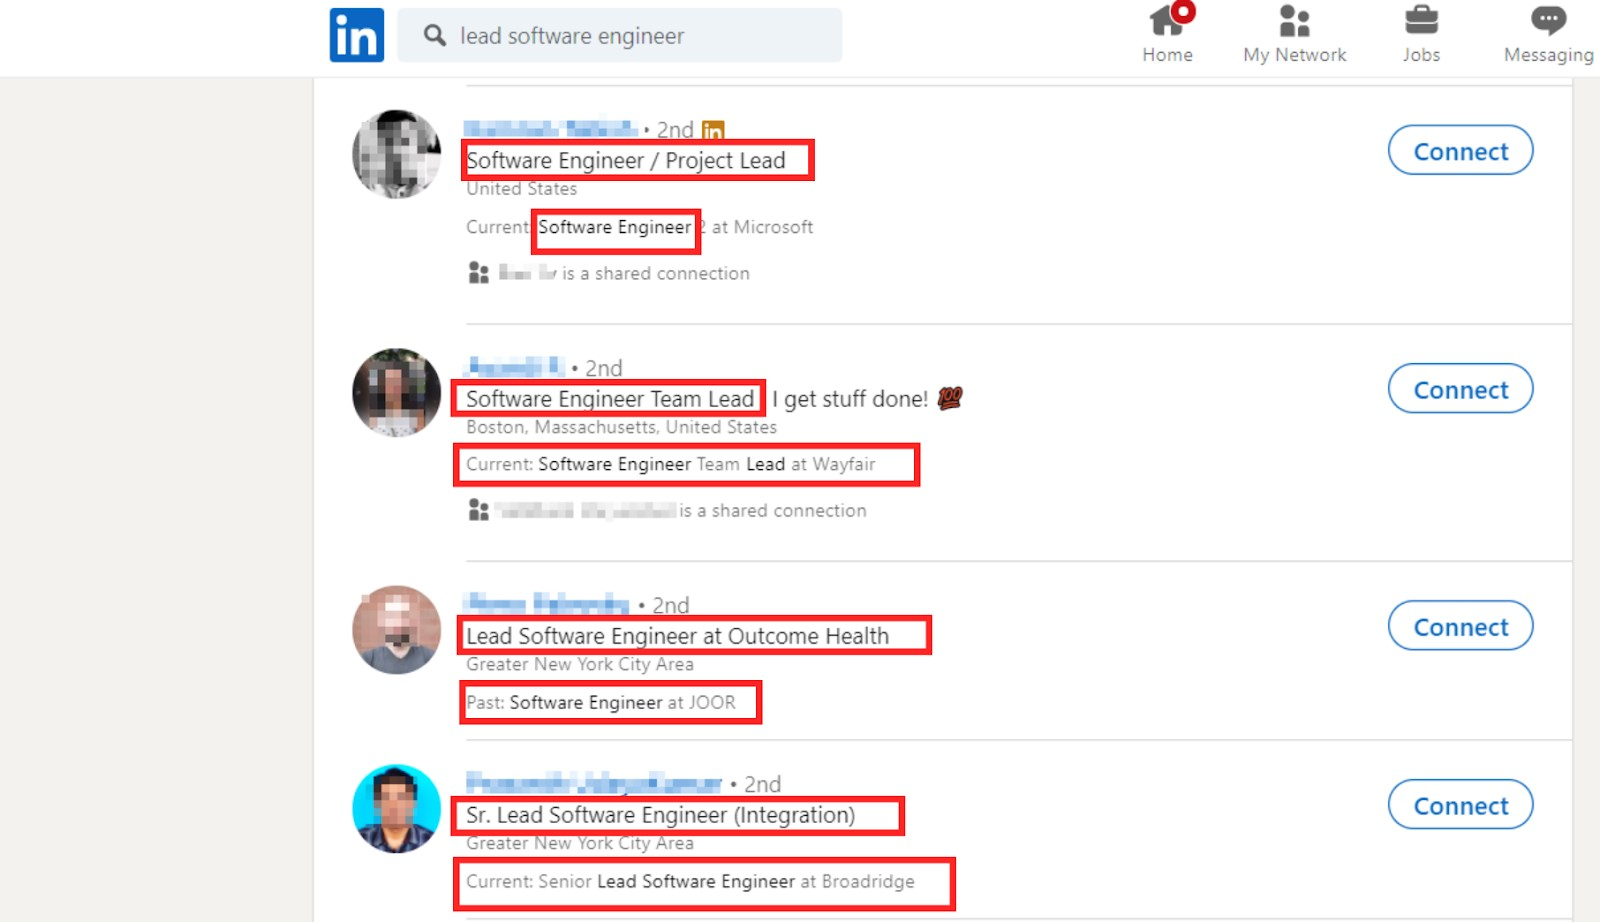 Screen shot of LinkedIn search for lead software engineer